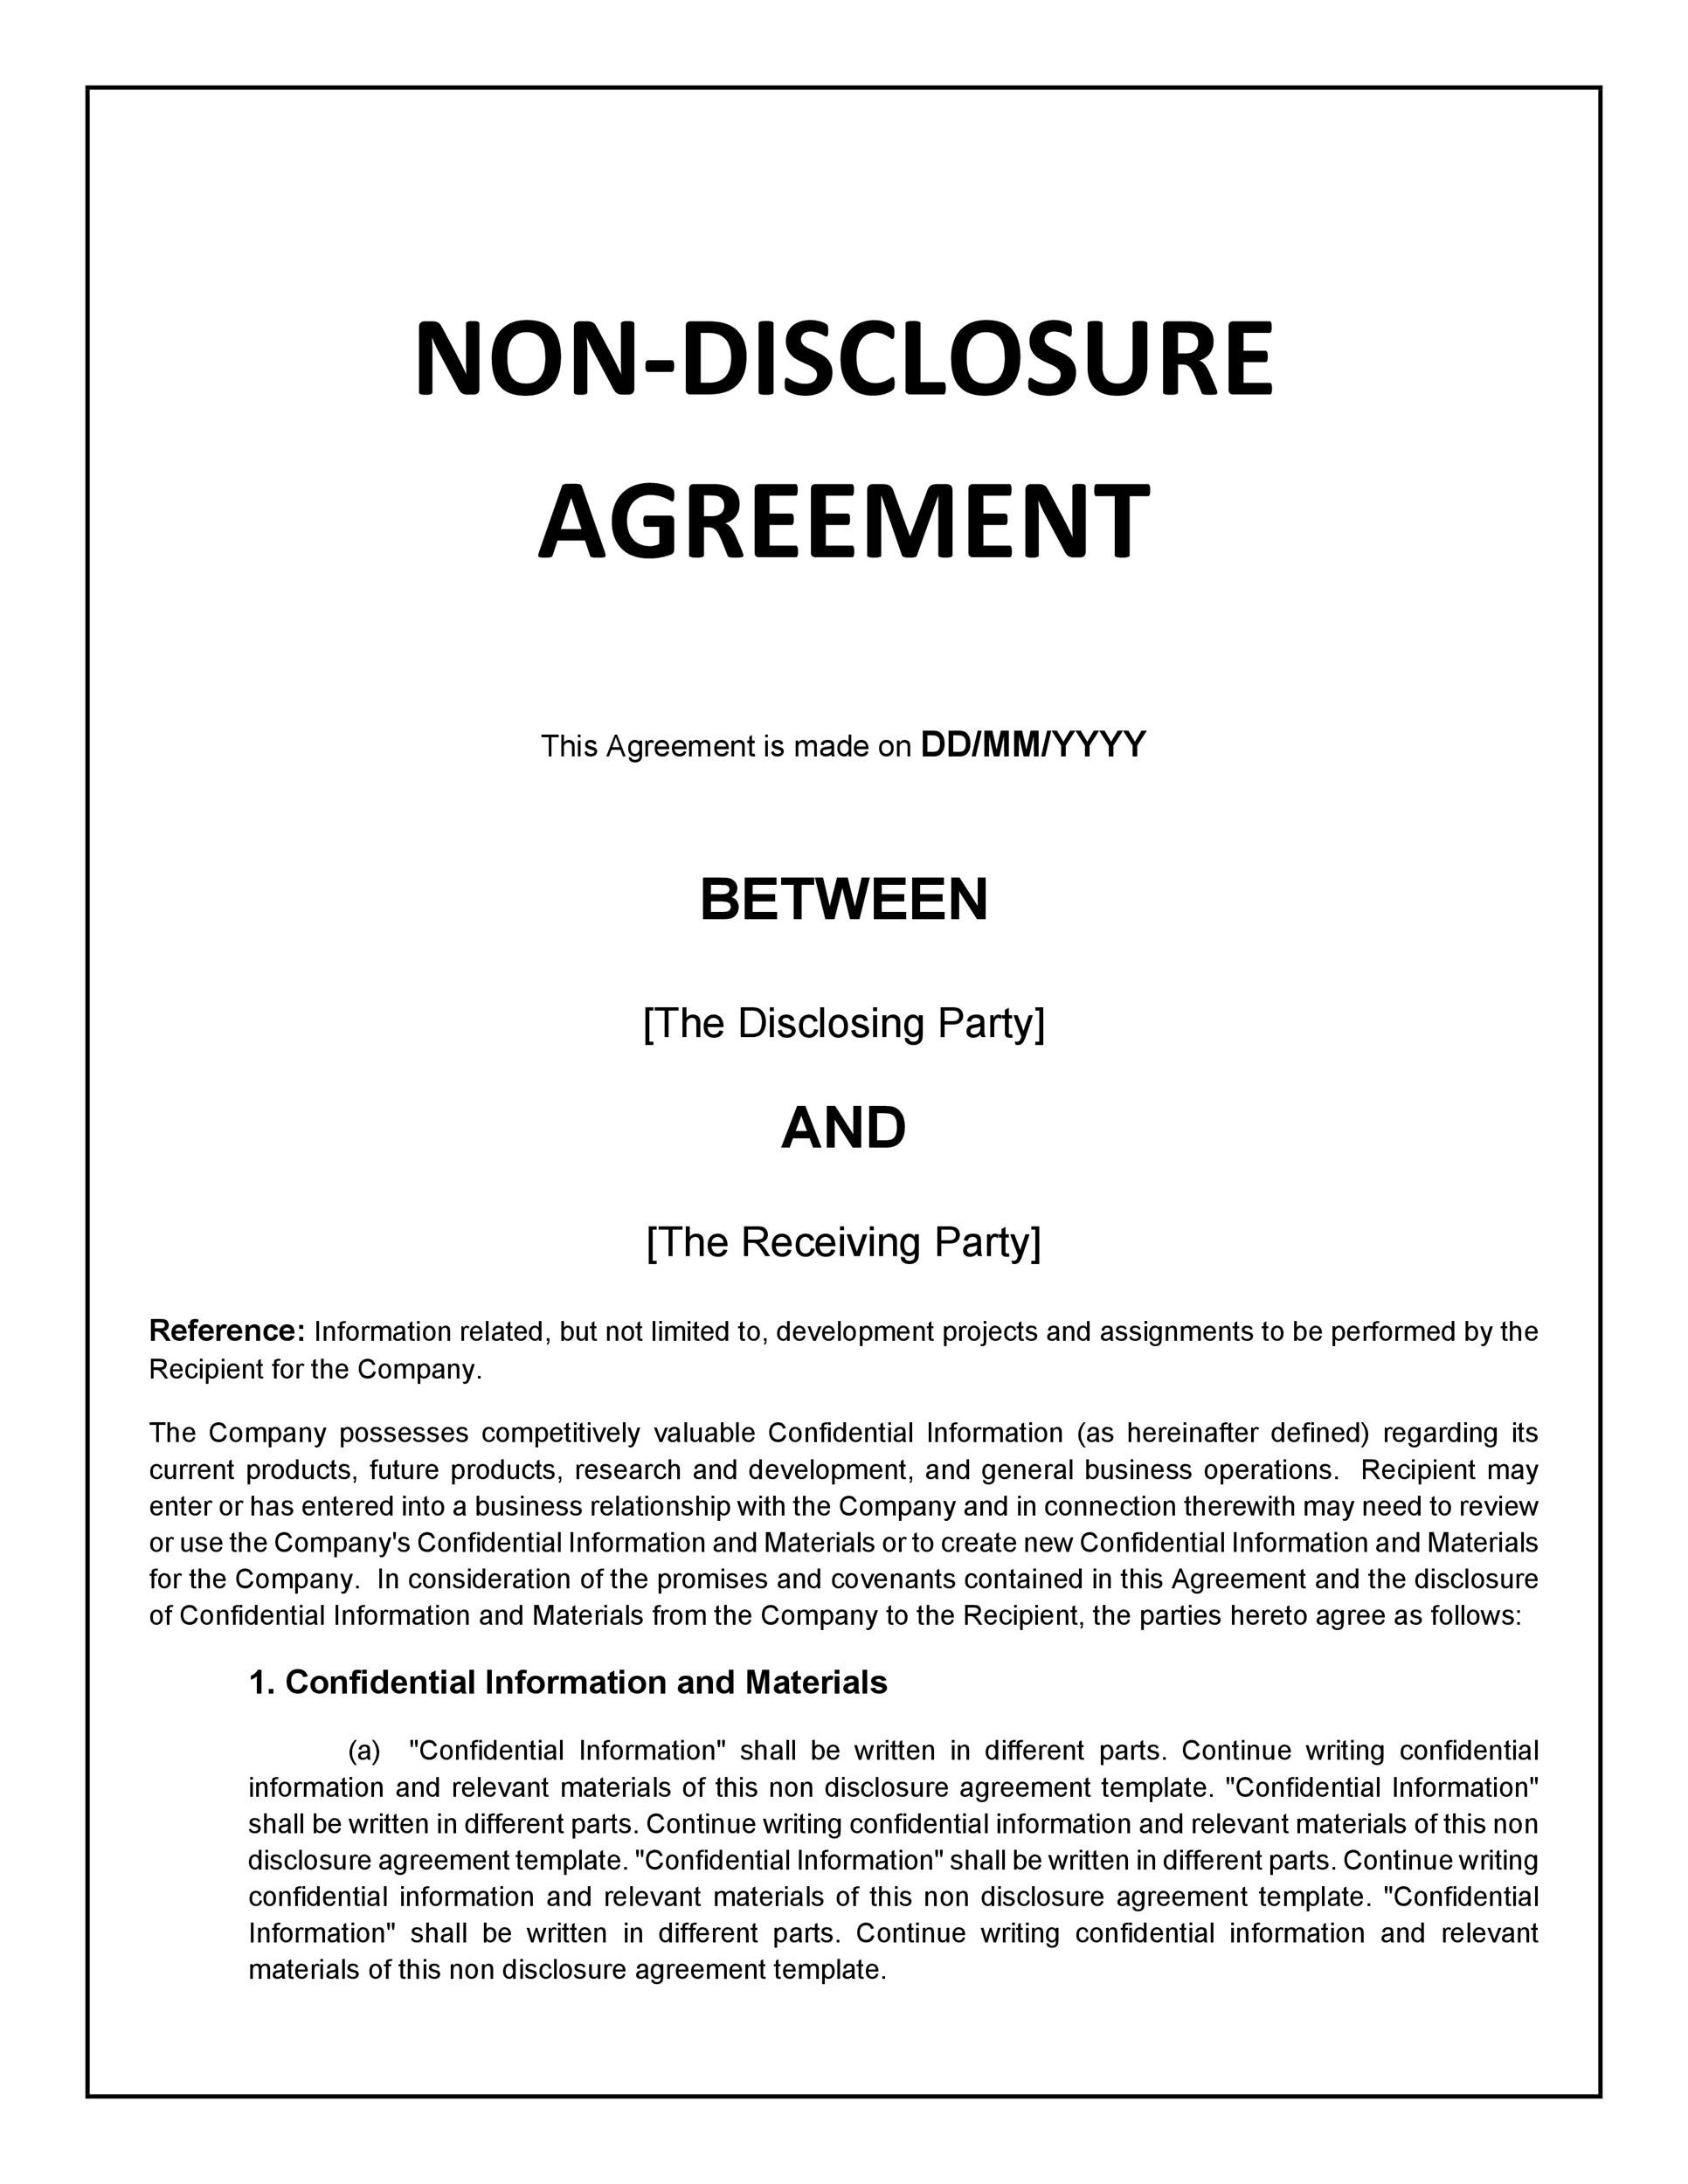 40 non disclosure agreement templates samples forms for Free non disclosure agreement template